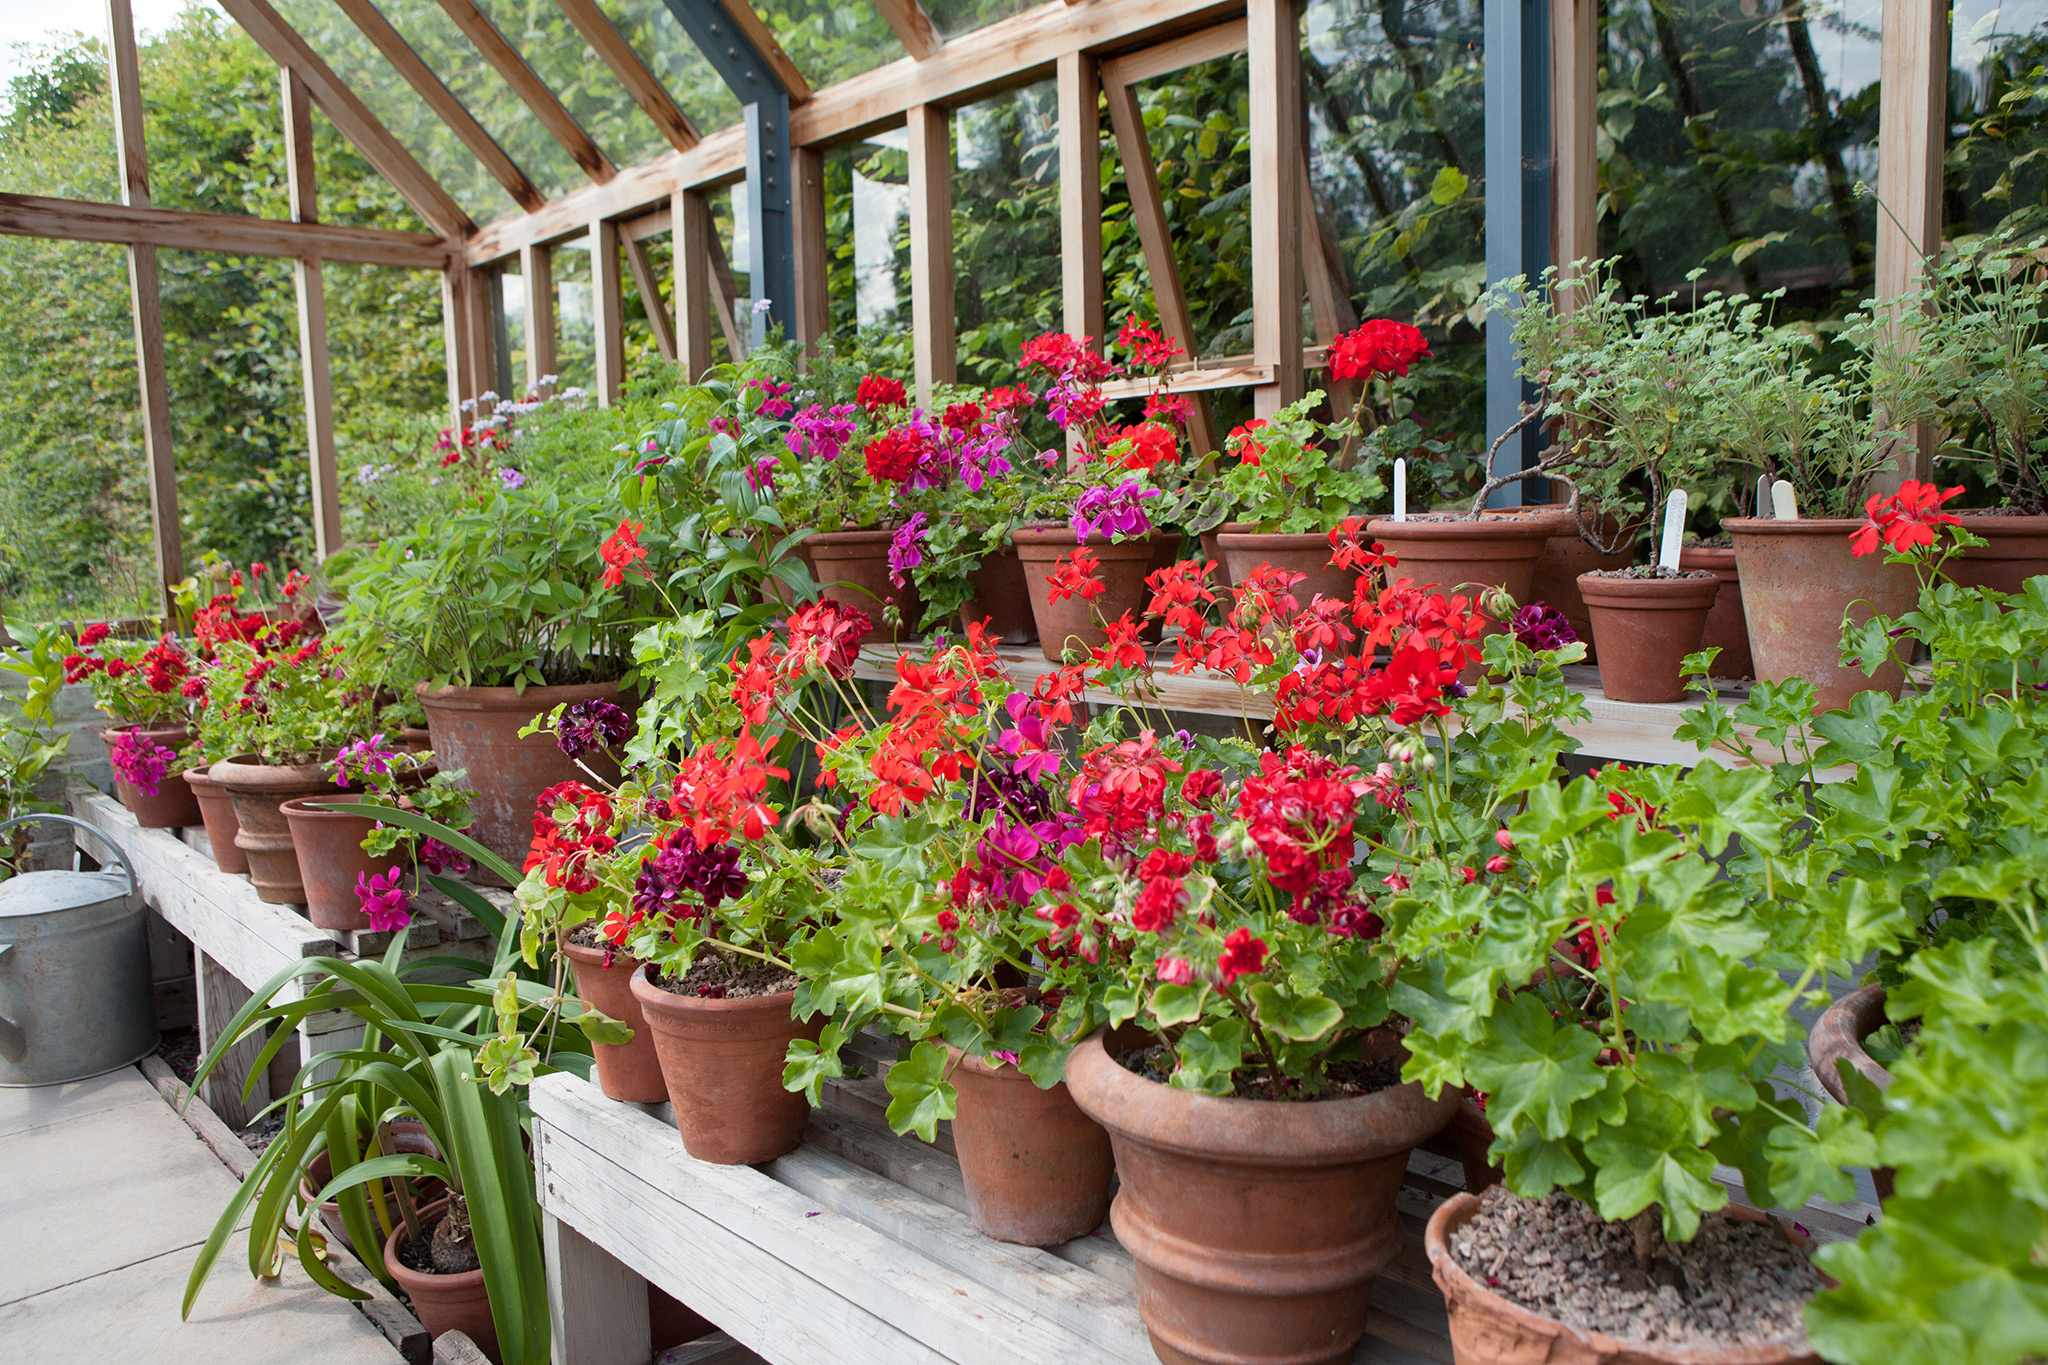 Monty Don's greenhouse and pelargonium collection